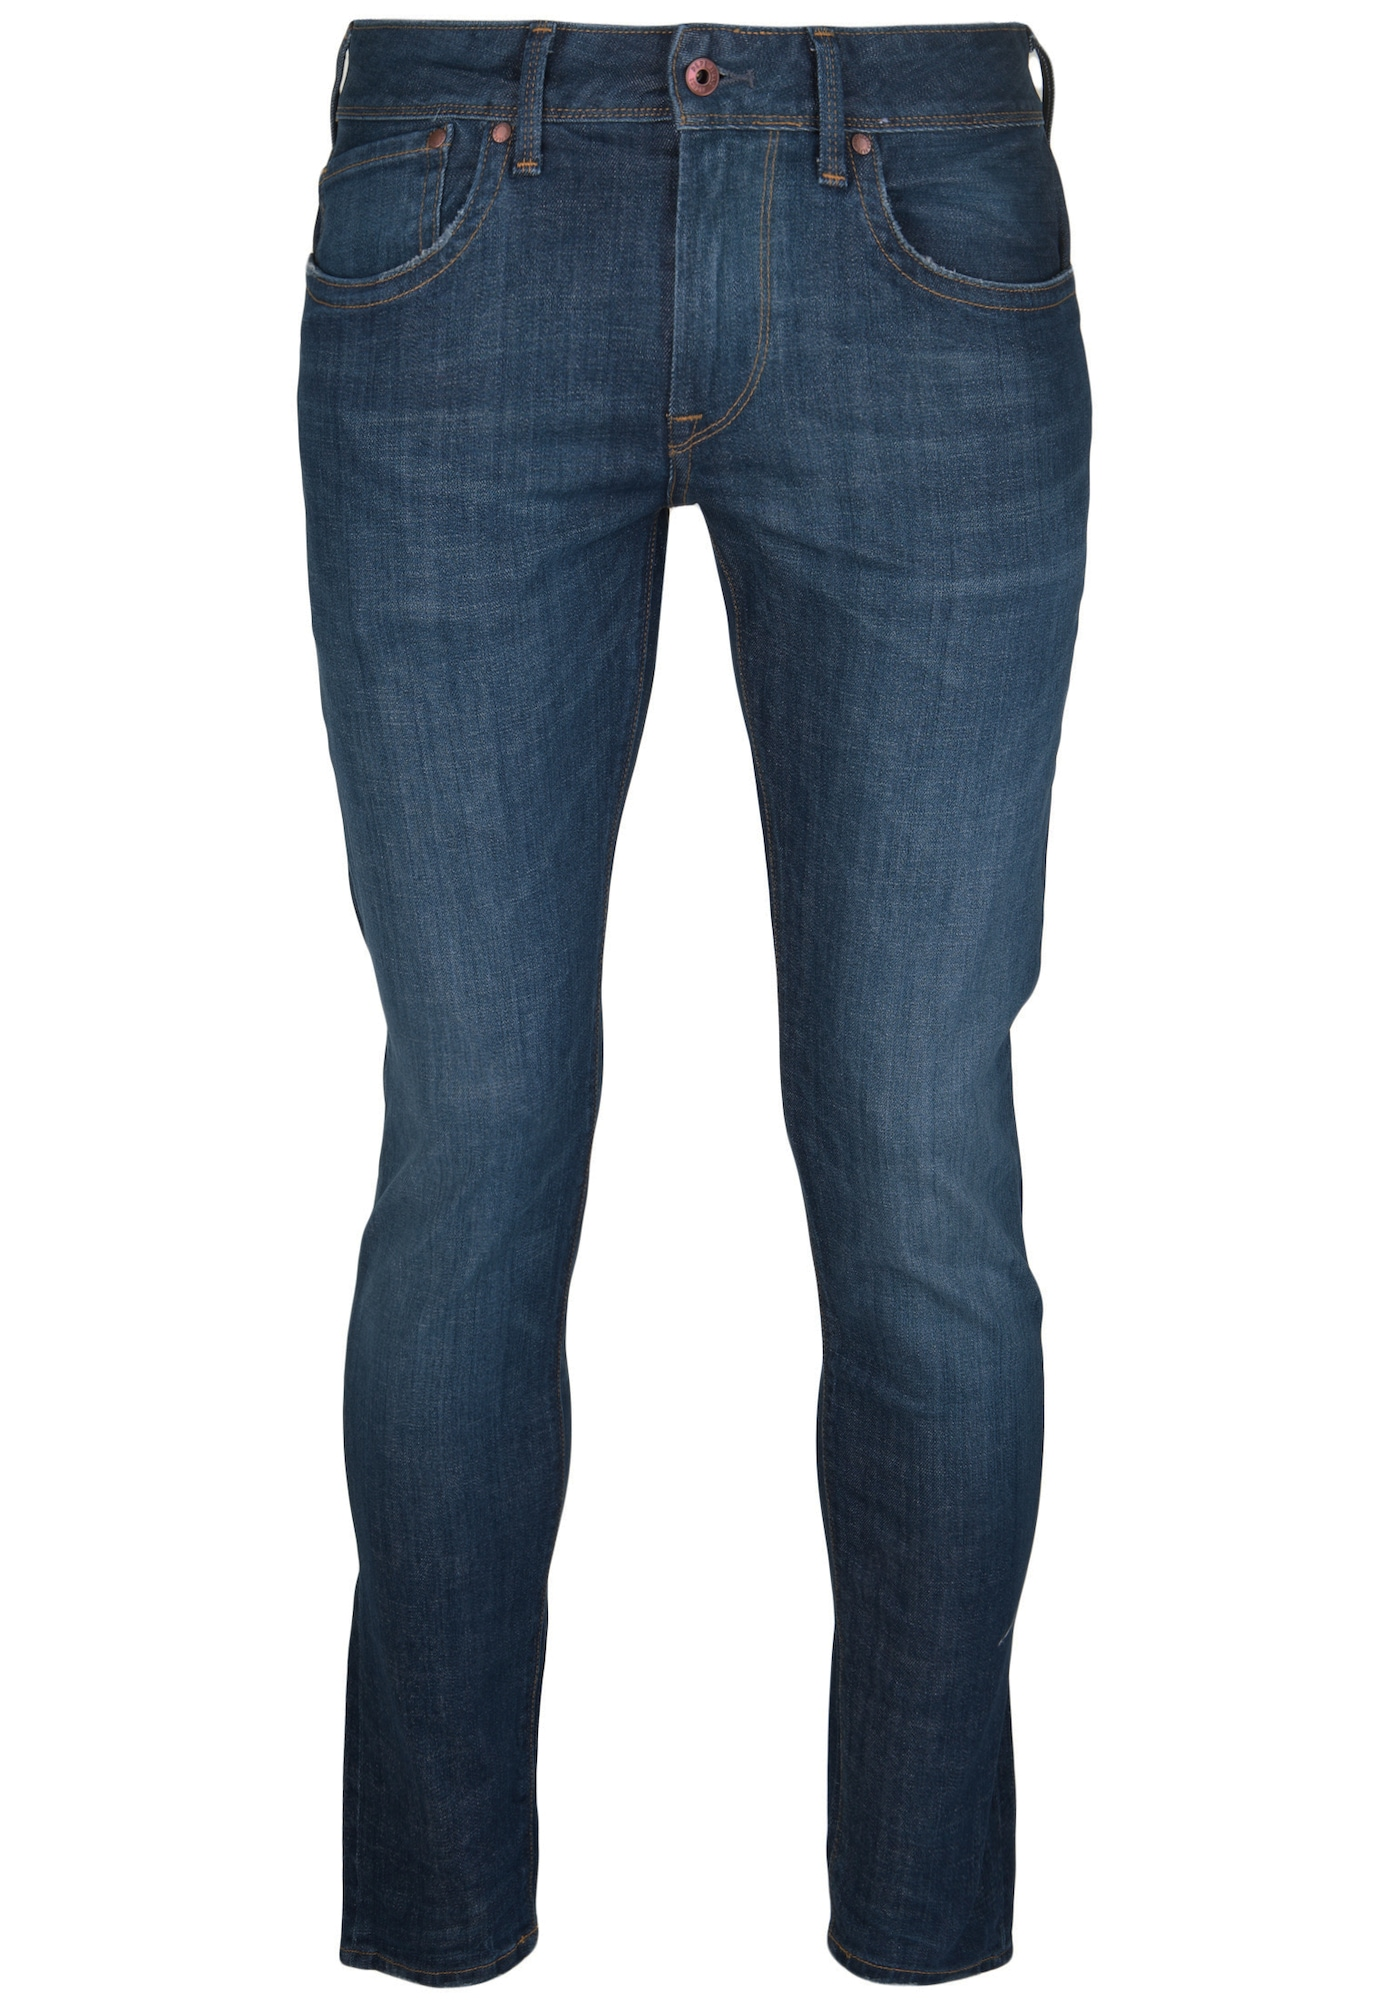 Pepe Jeans Heren Jeans HATCH blauw